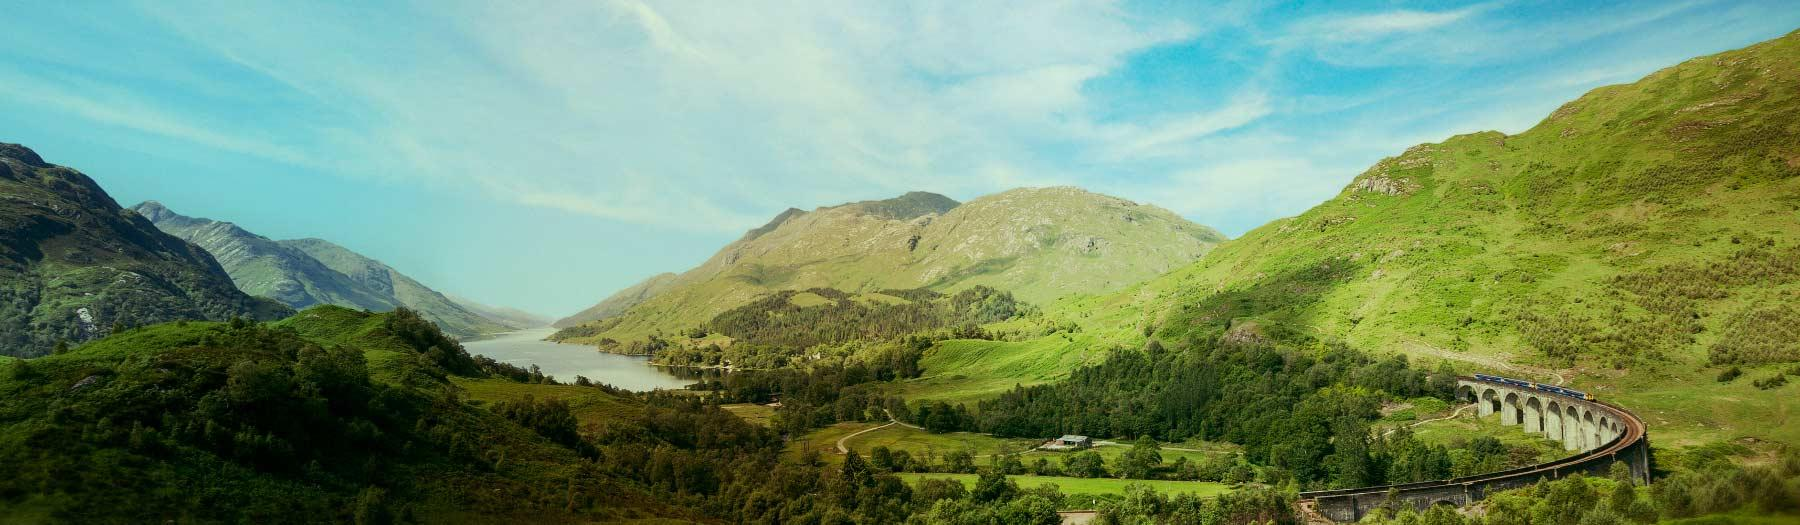 Image: Loch Shiel and the Glenfinnan Viaduct. Credit: Image © Paul Childs.